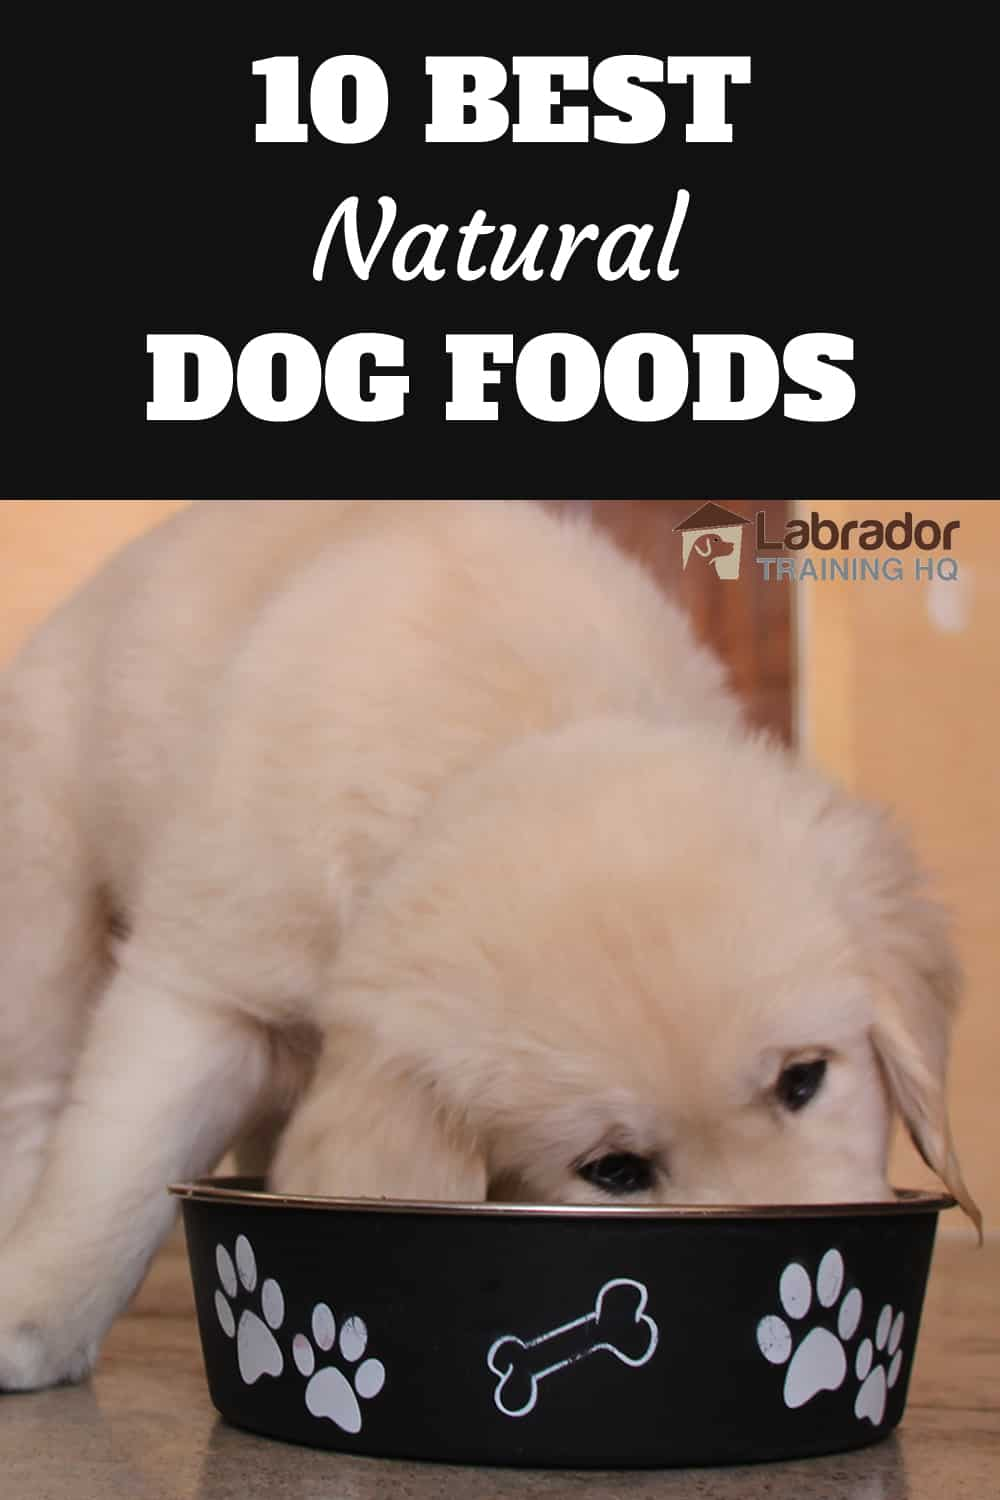 Best Natural Dog Foods - Yellow puppy eating from bowl